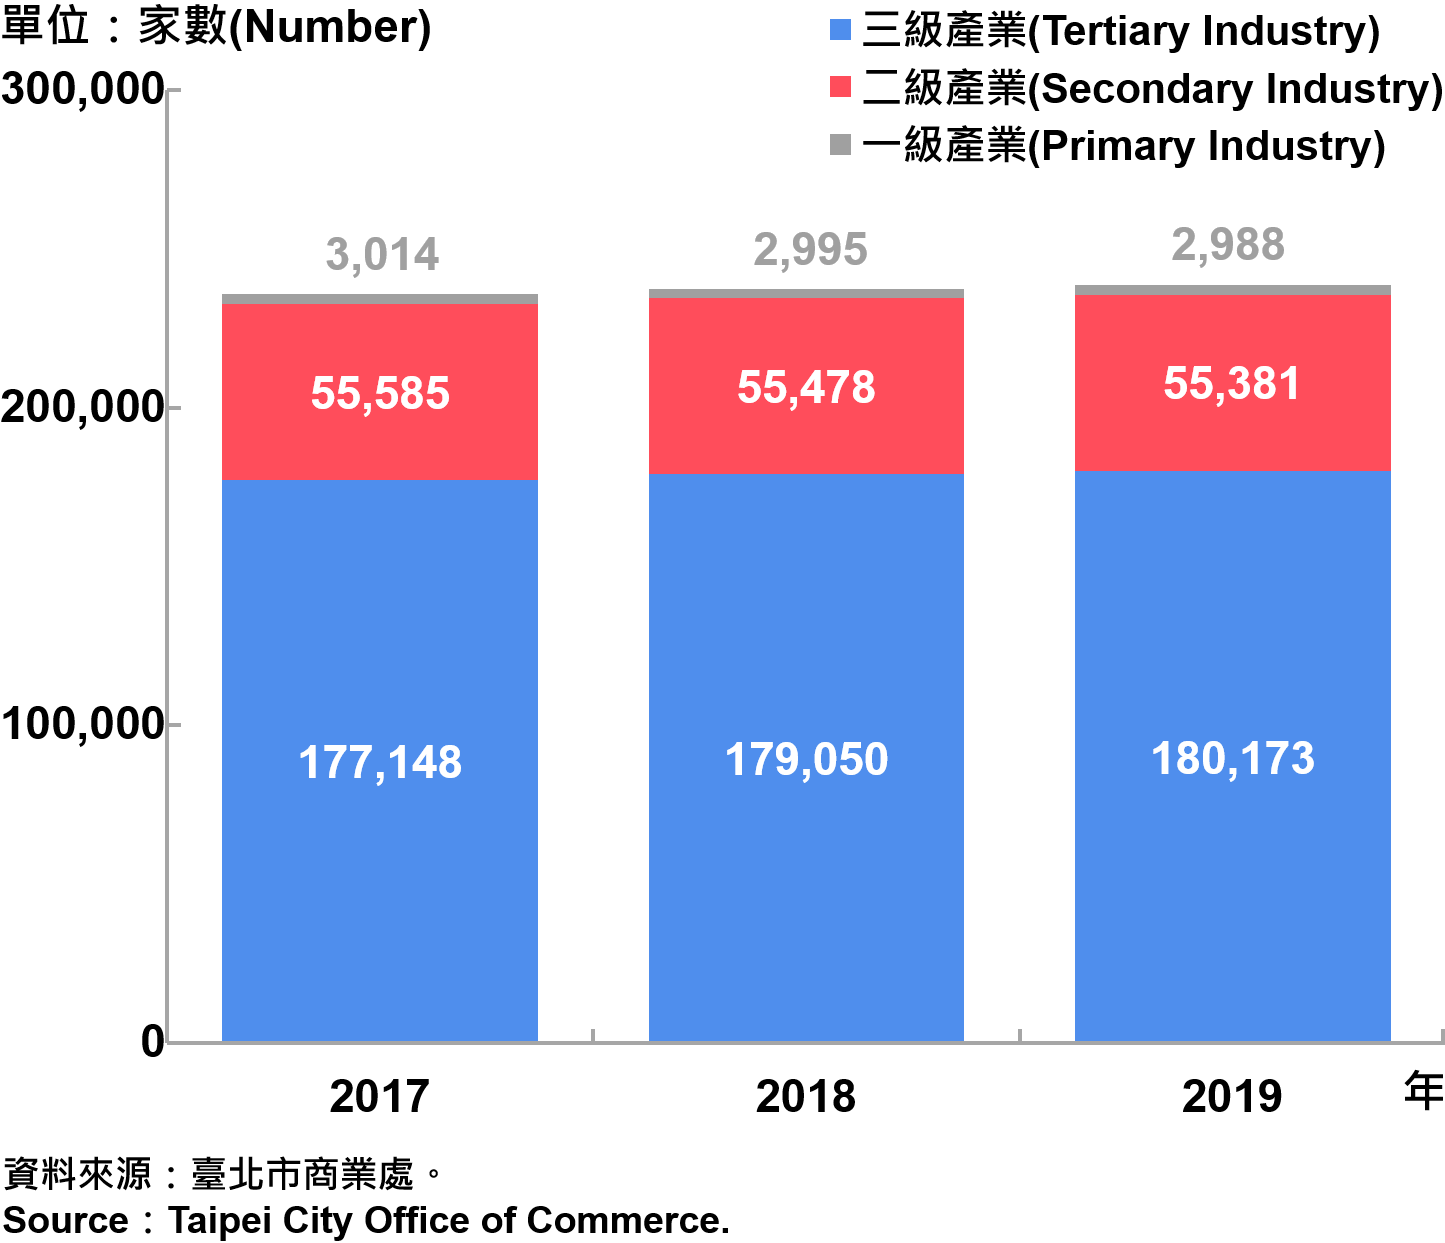 臺北市一二三級產業登記家數—2019 Number of Primary , Secondary and Tertiary Industry in Taipei City—2019